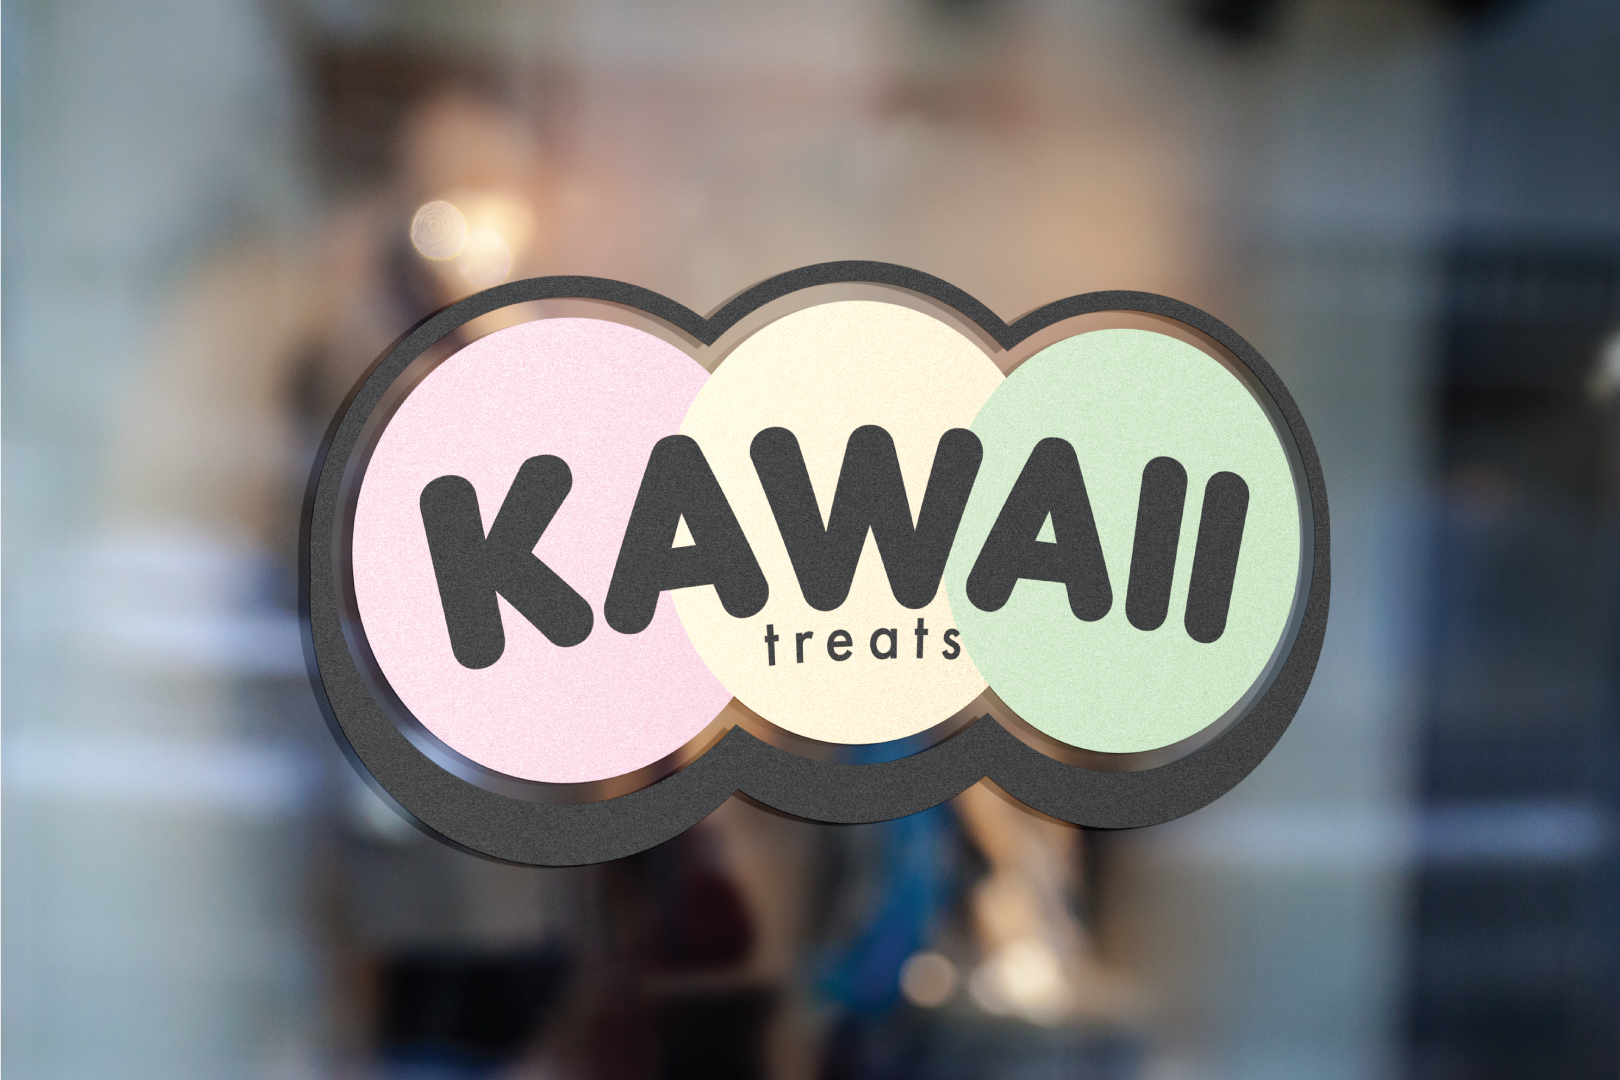 KAWAII-TREATS-Window-Signage-MockUp